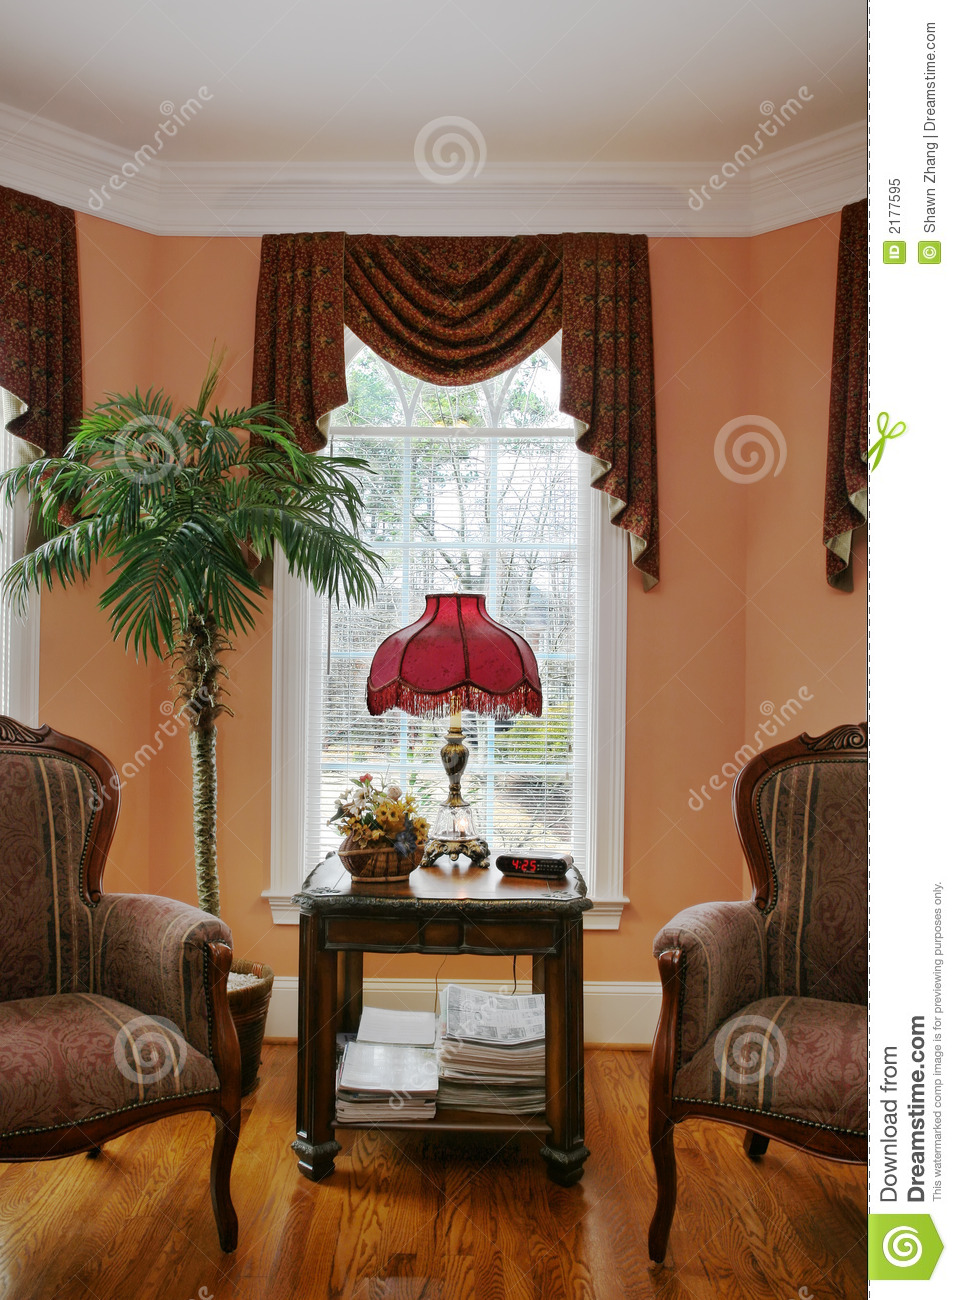 family room sofa table english company reviews living with bay window royalty free stock photo ...